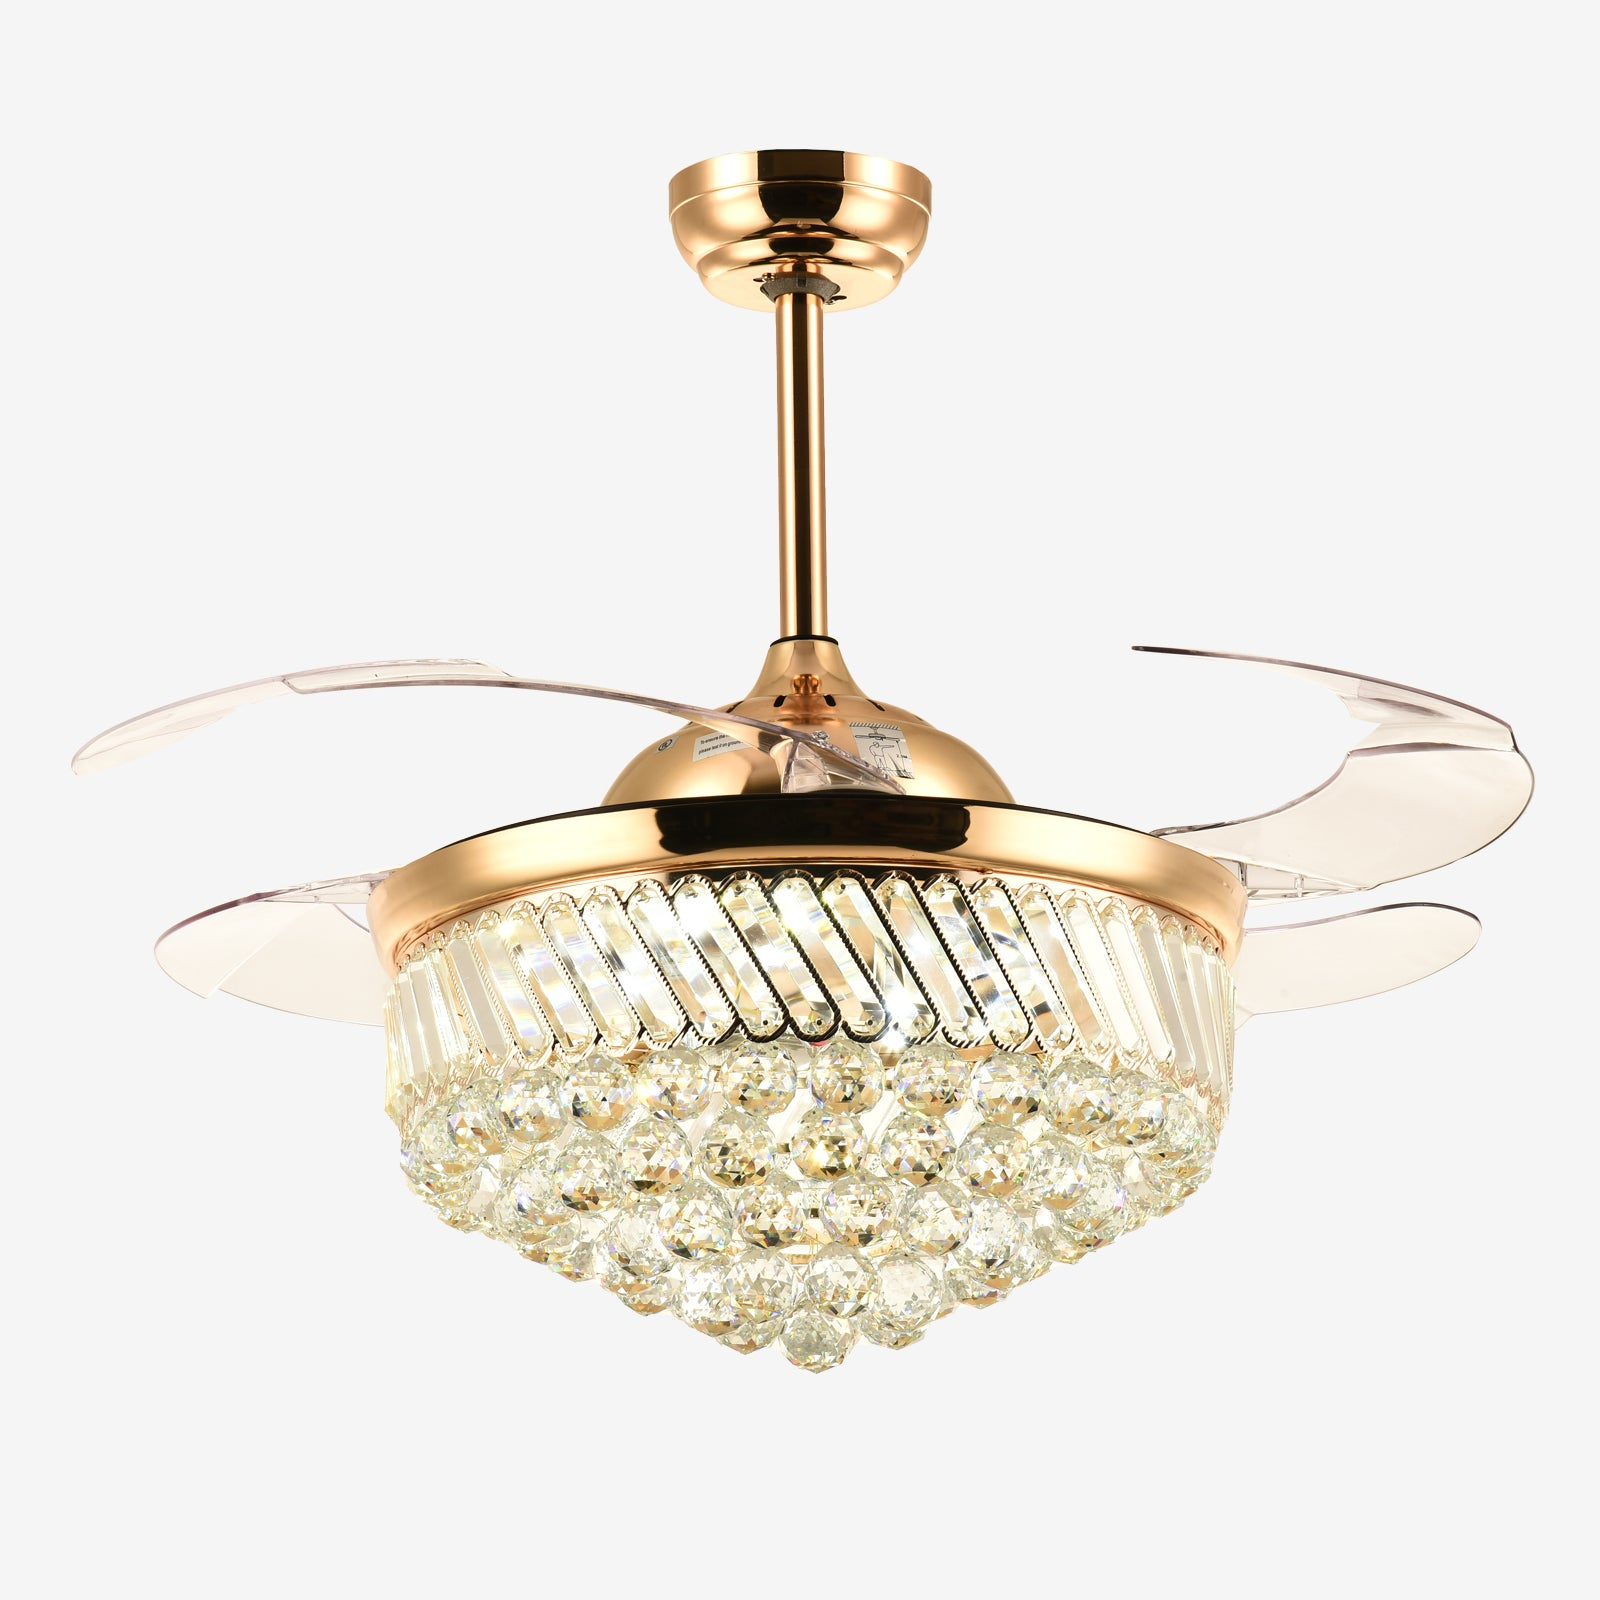 Crystal Ceiling Fan With Blades Extended